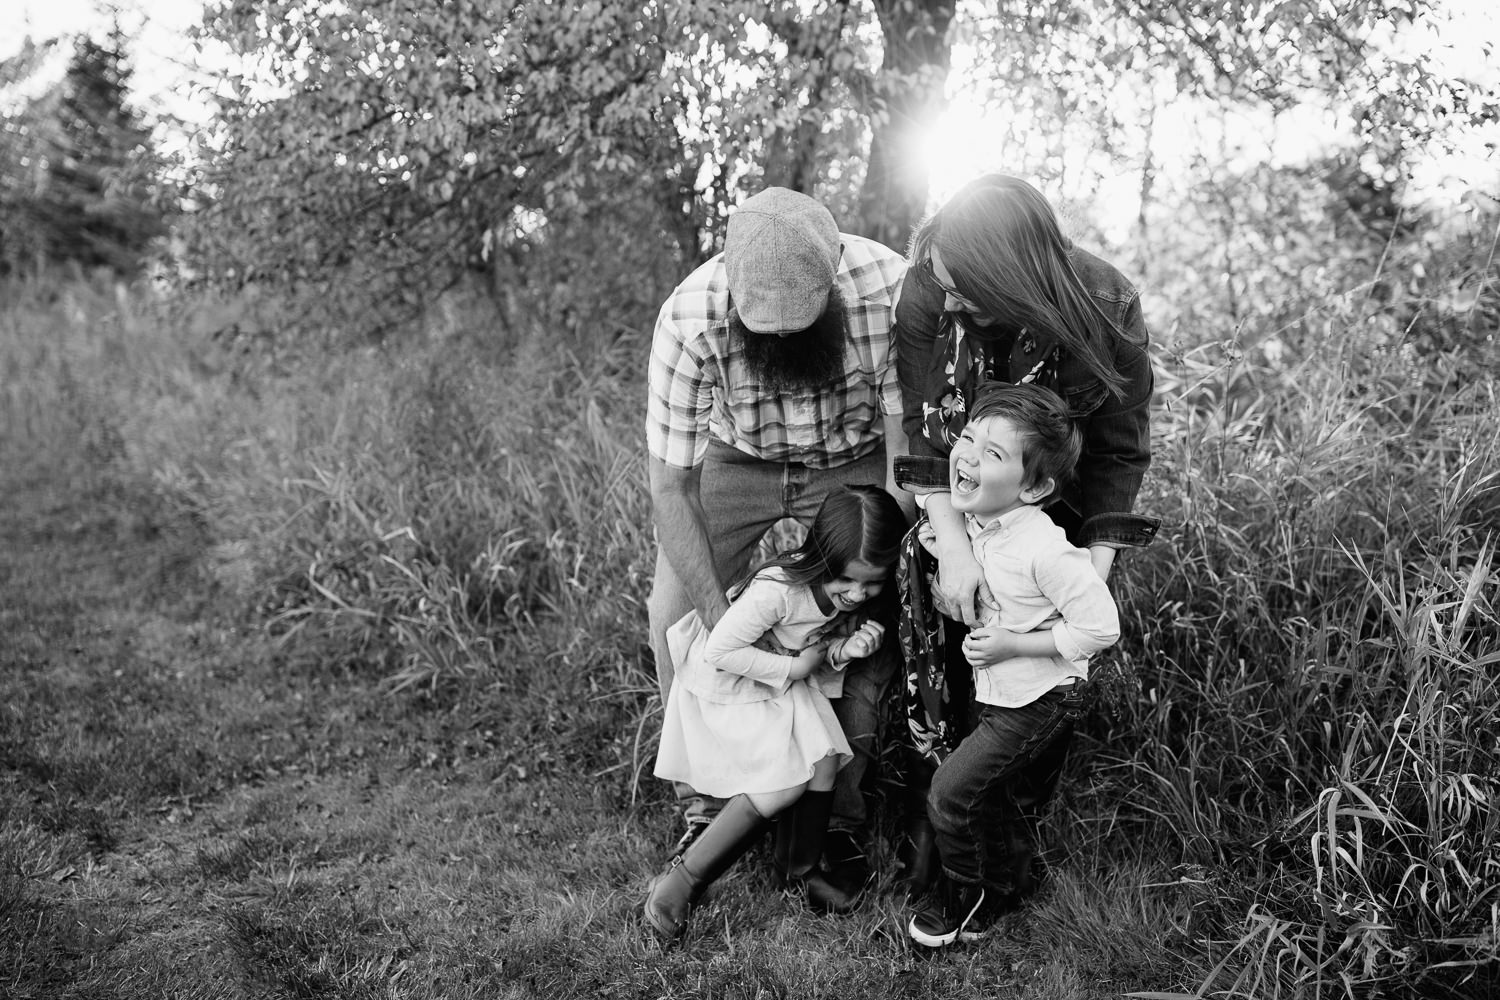 family of 4 standing togetherin grass field in front of tree, mom and dad leaning over, father tickling 5 year old daughter and mother tickling son, kids laughing - Newmarket In-Home Photography